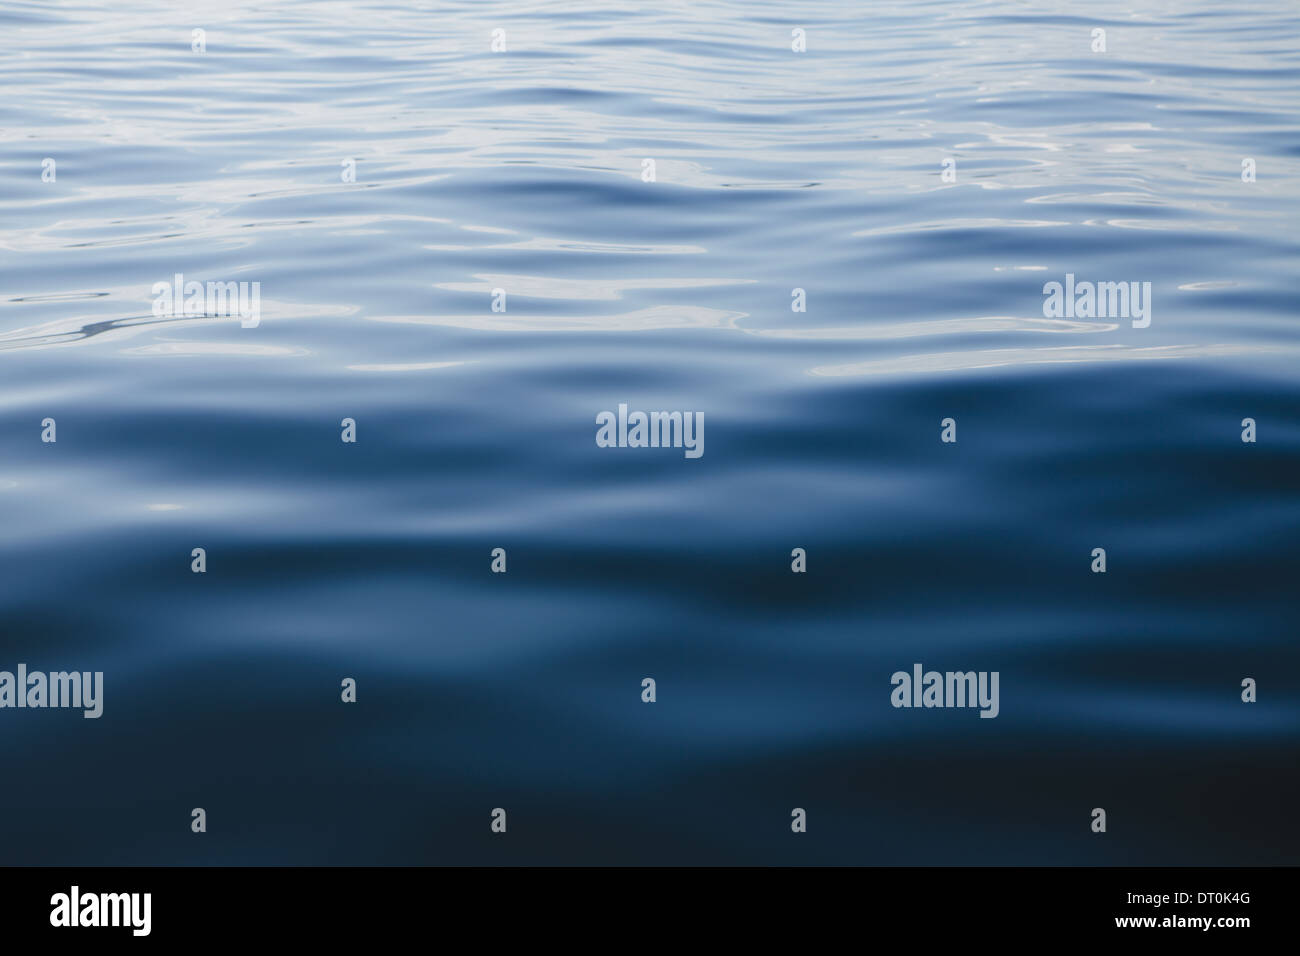 Washington State USA Blue ocean water and reflections close up - Stock Image